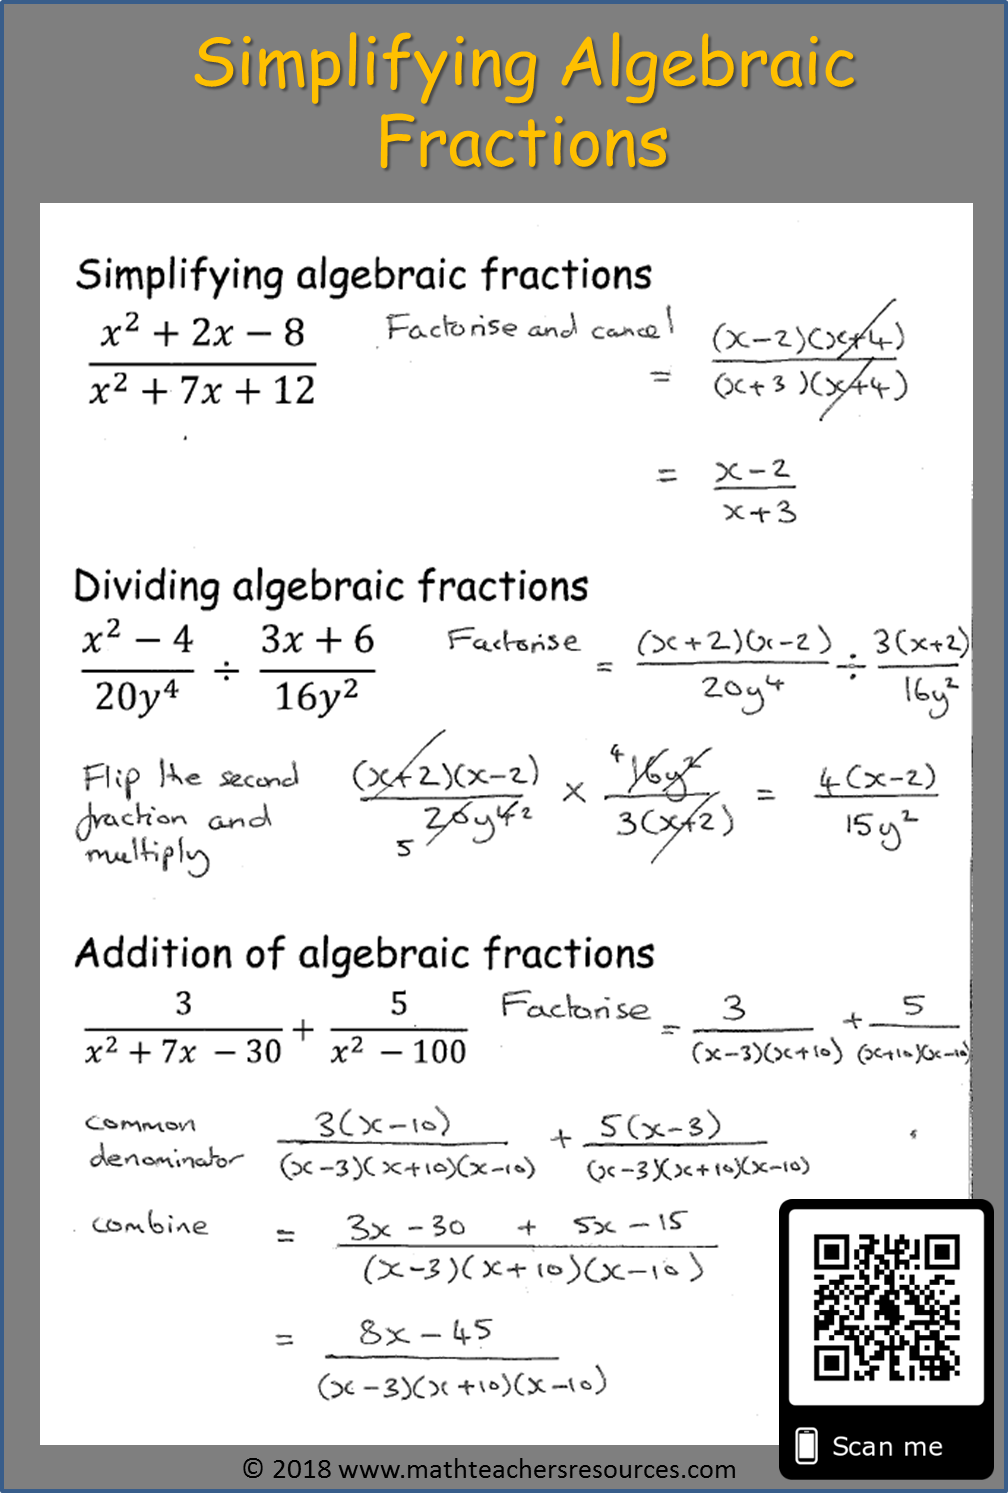 Rational Expressions Simplifying Rational Algebraic Expressions Simplifying Algebraic Expressions Rational Expressions Simplifying Rational Expressions [ 1503 x 1008 Pixel ]